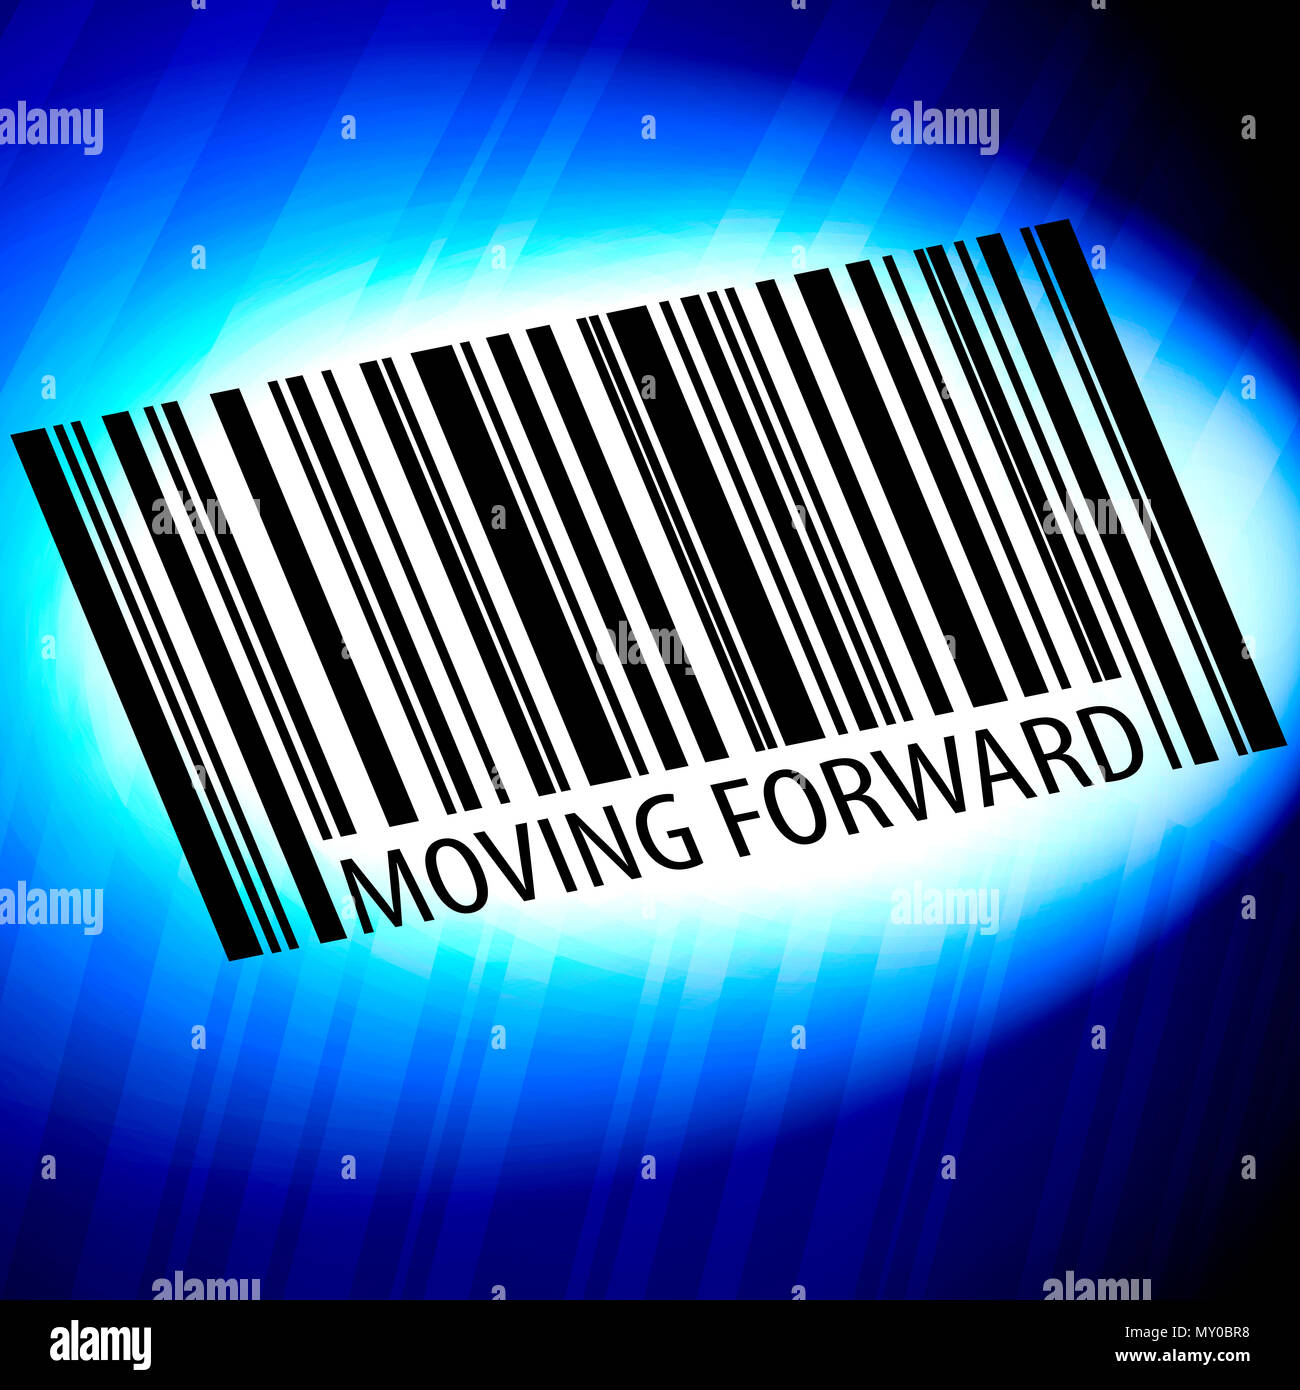 Moving forward - barcode with blue Background - Stock Image